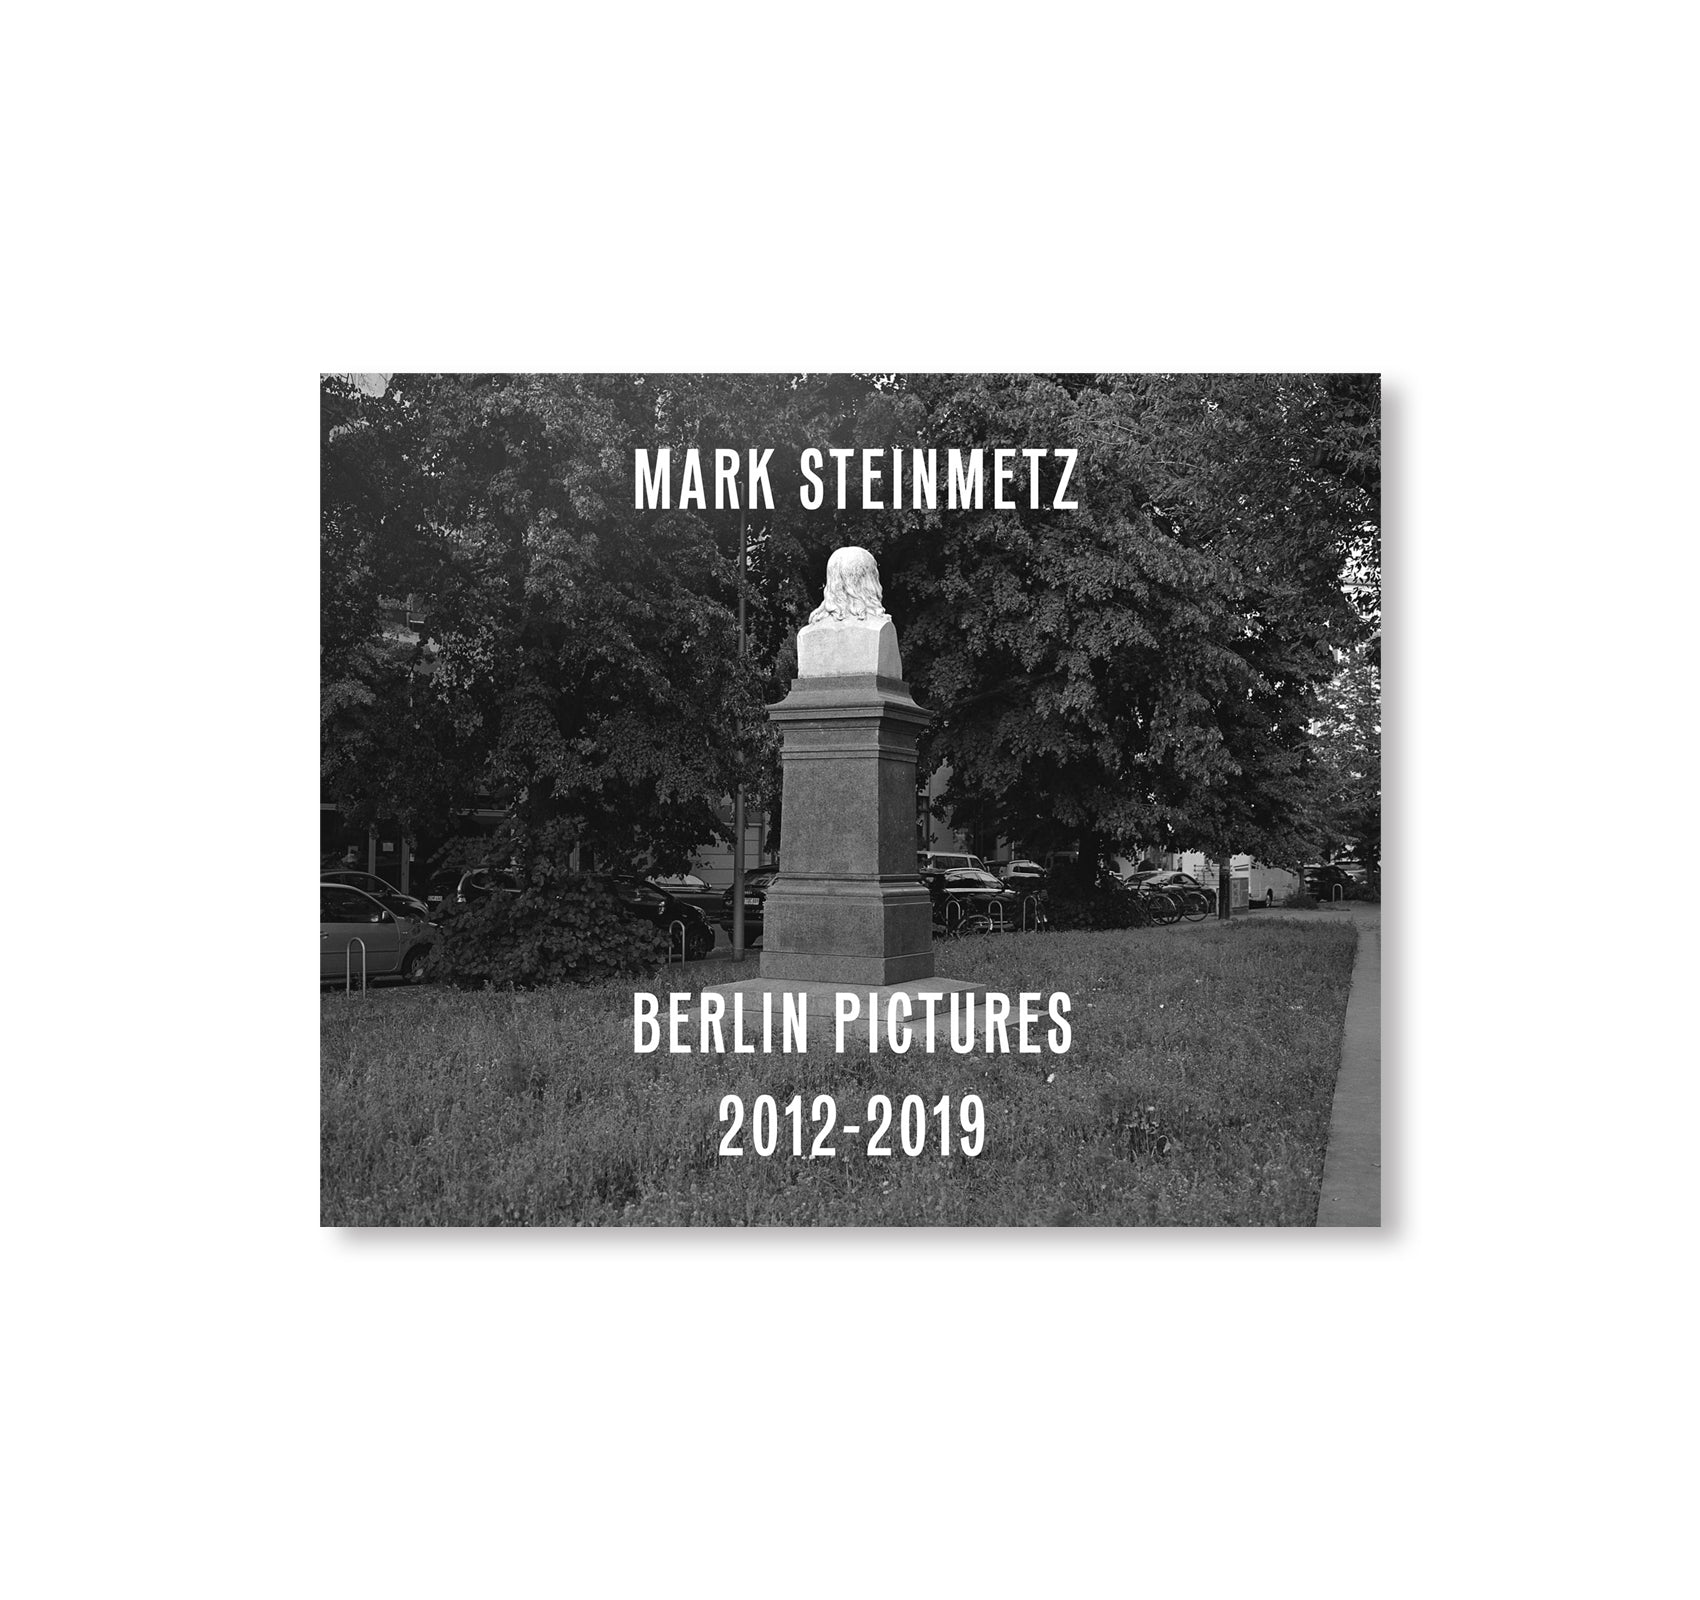 BERLIN PICTURES by Mark Steinmetz